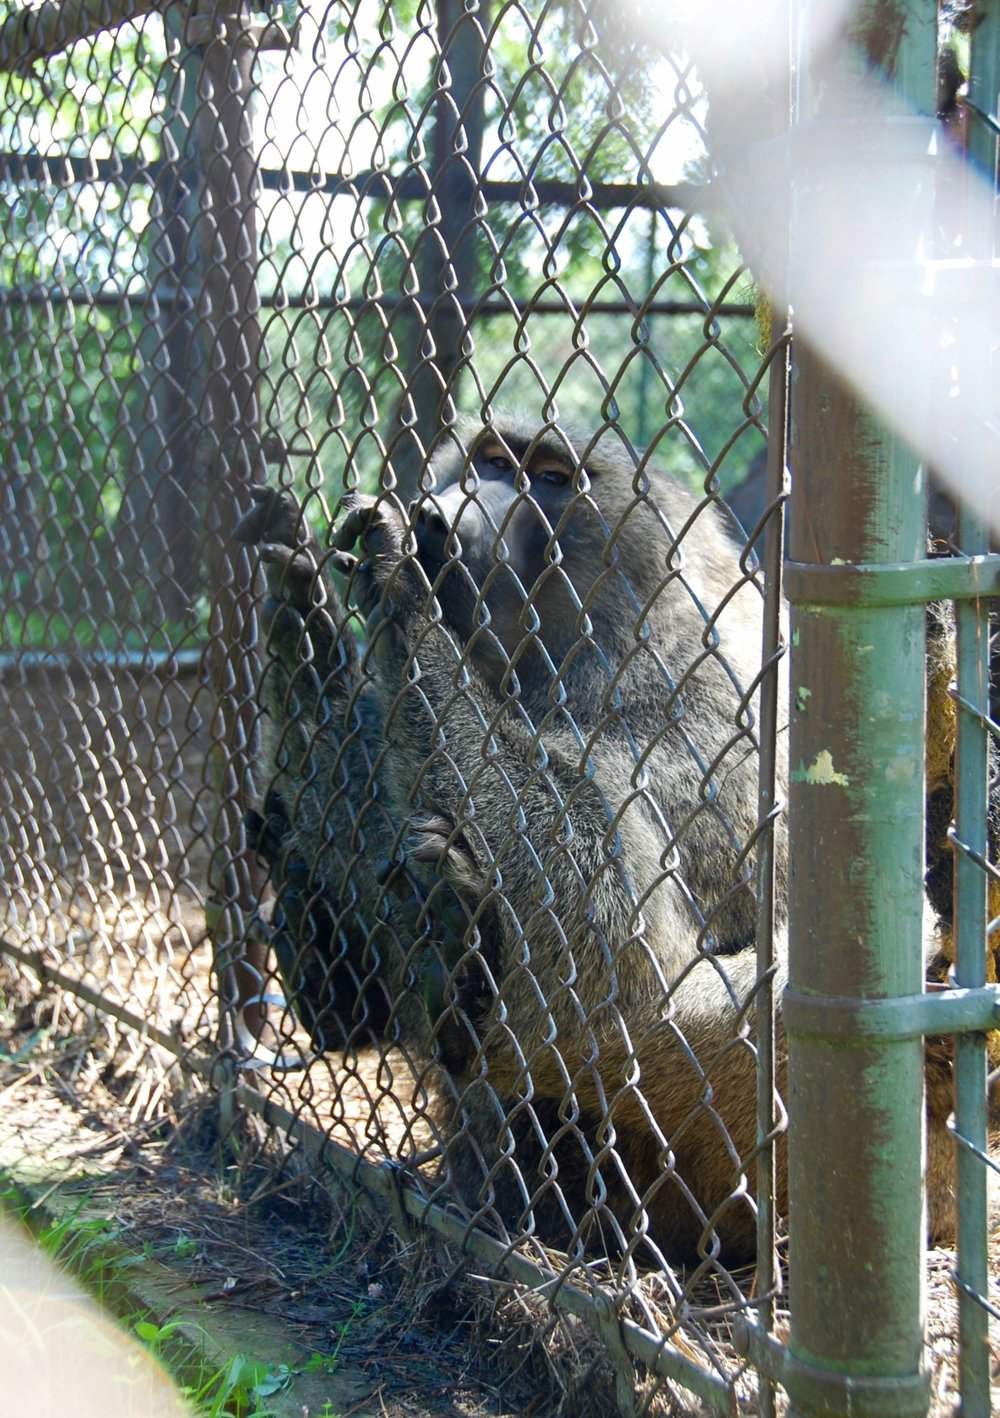 bailiwick ranch zoo babboon